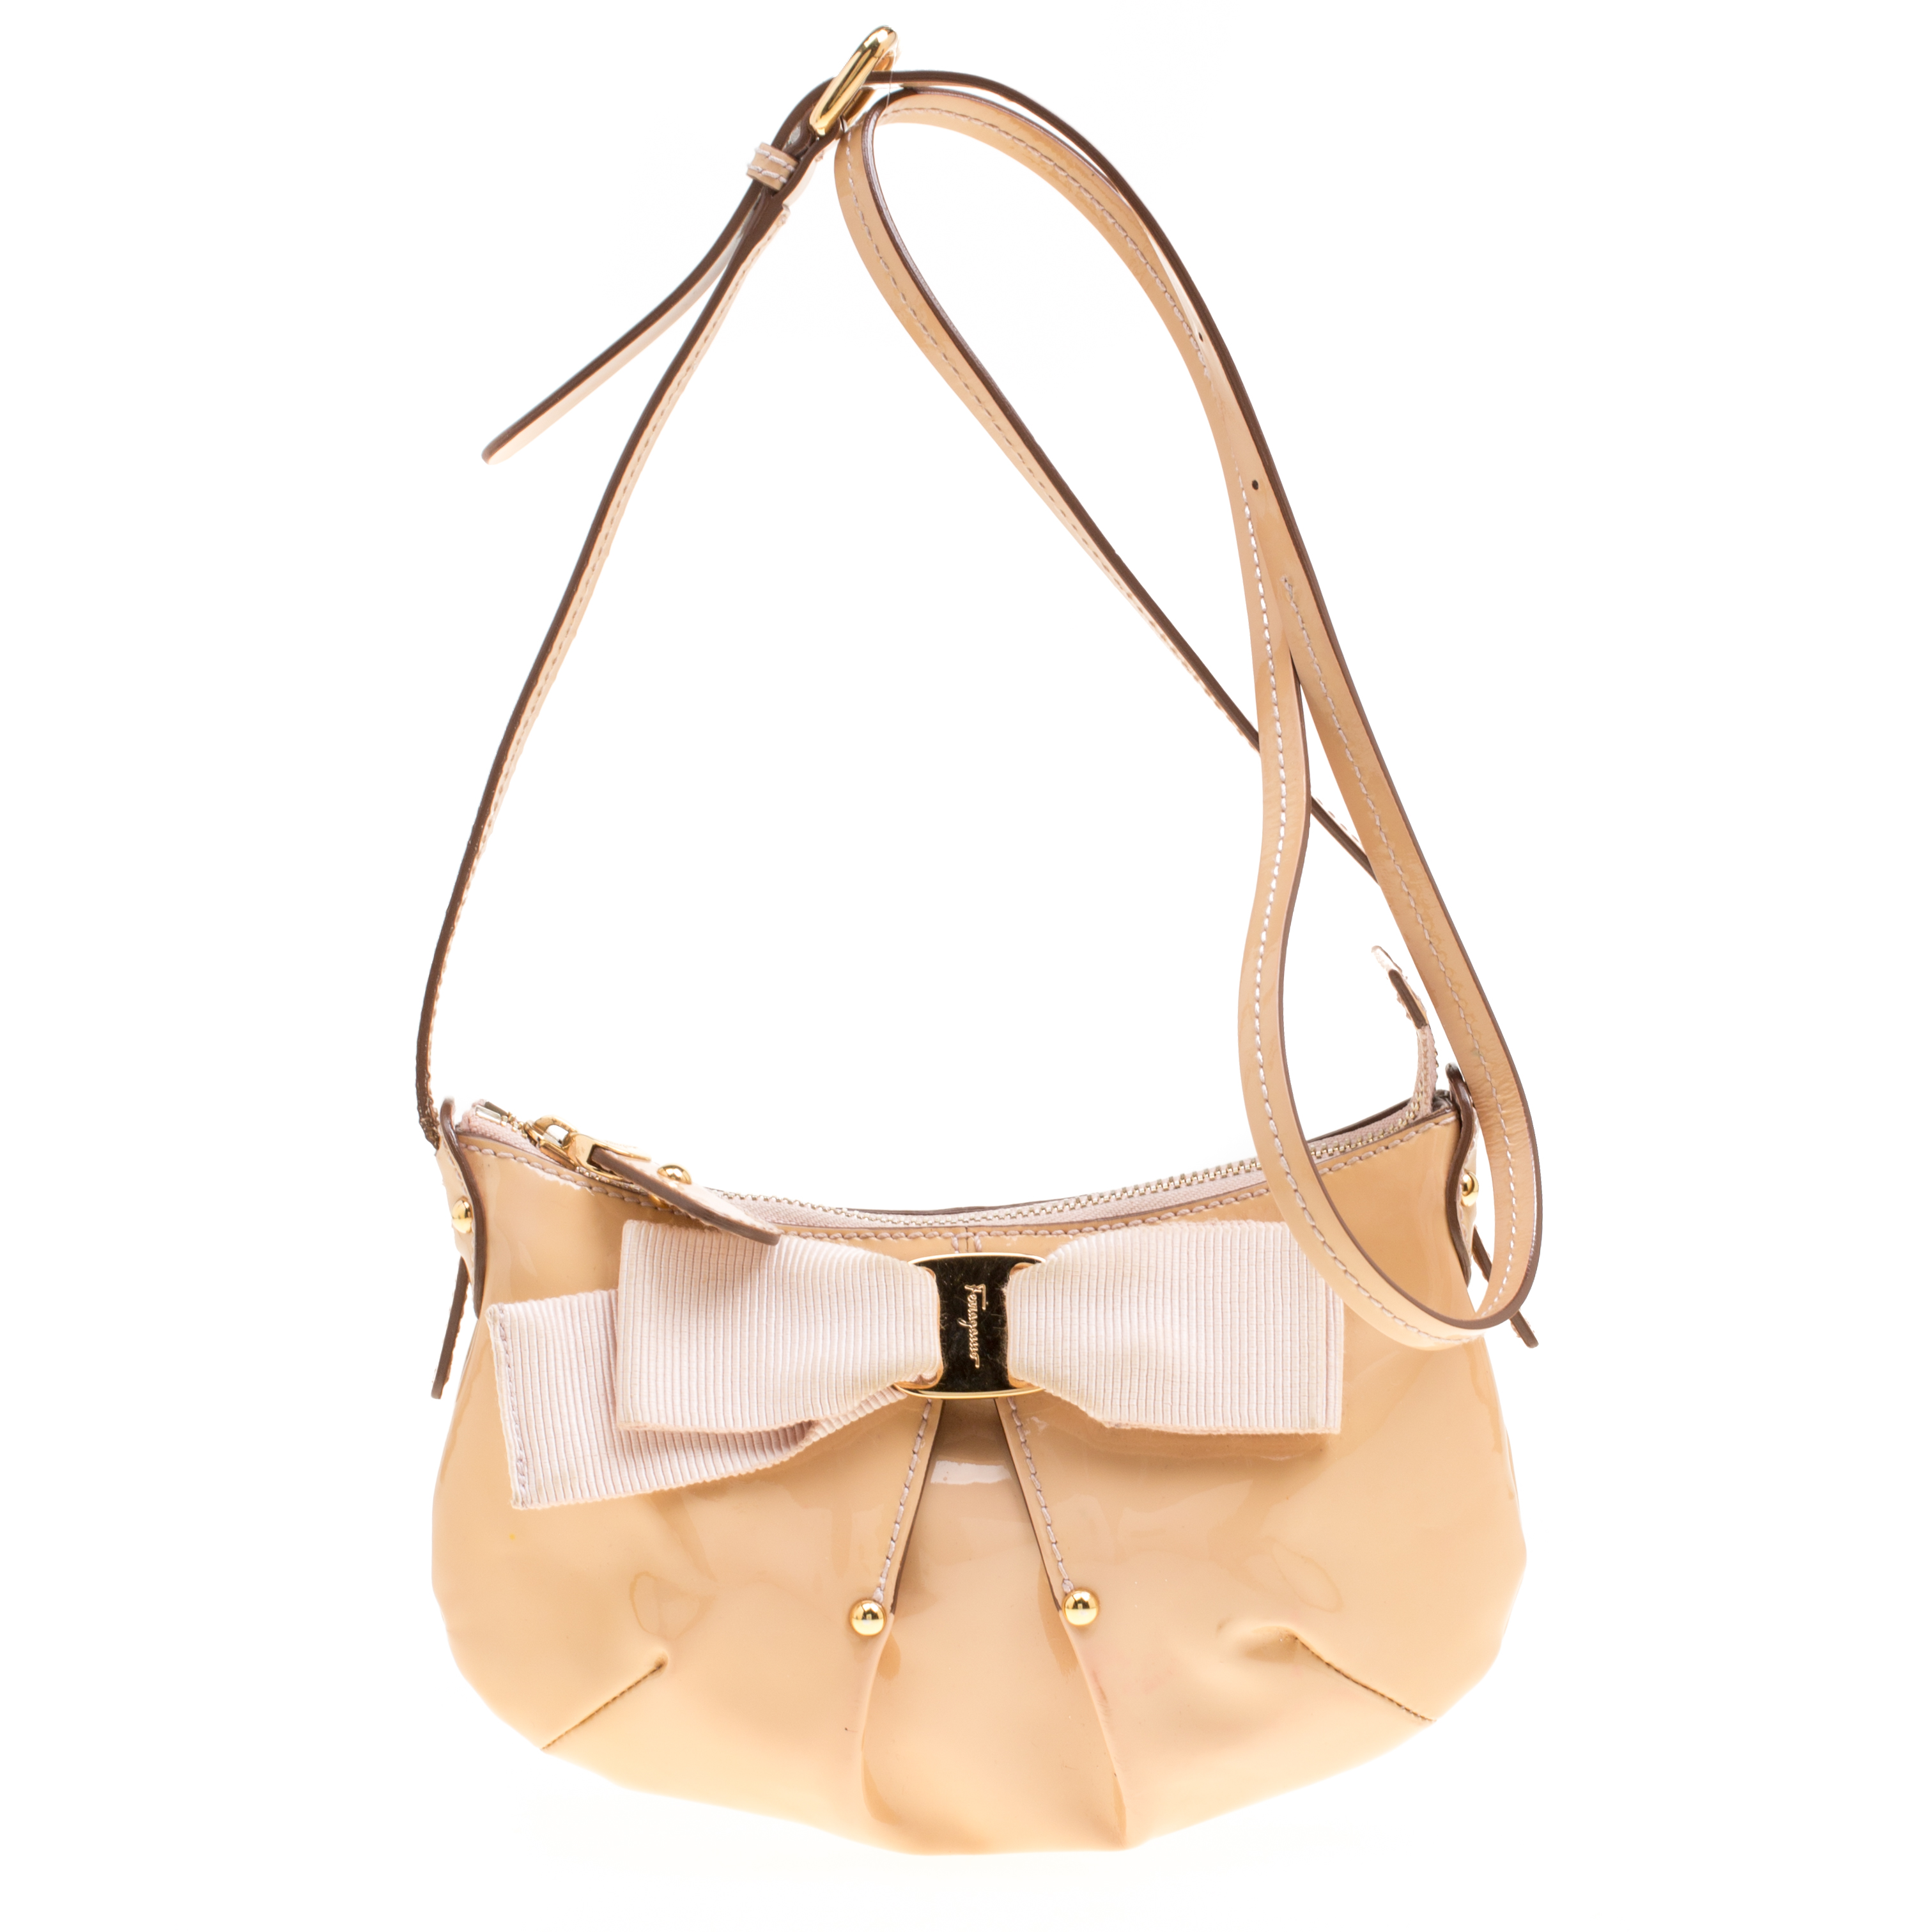 ... Salvatore Ferragamo Beige Patent Leather Miss Vara Shoulder Bag.  nextprev. prevnext 461e8782eb5e7